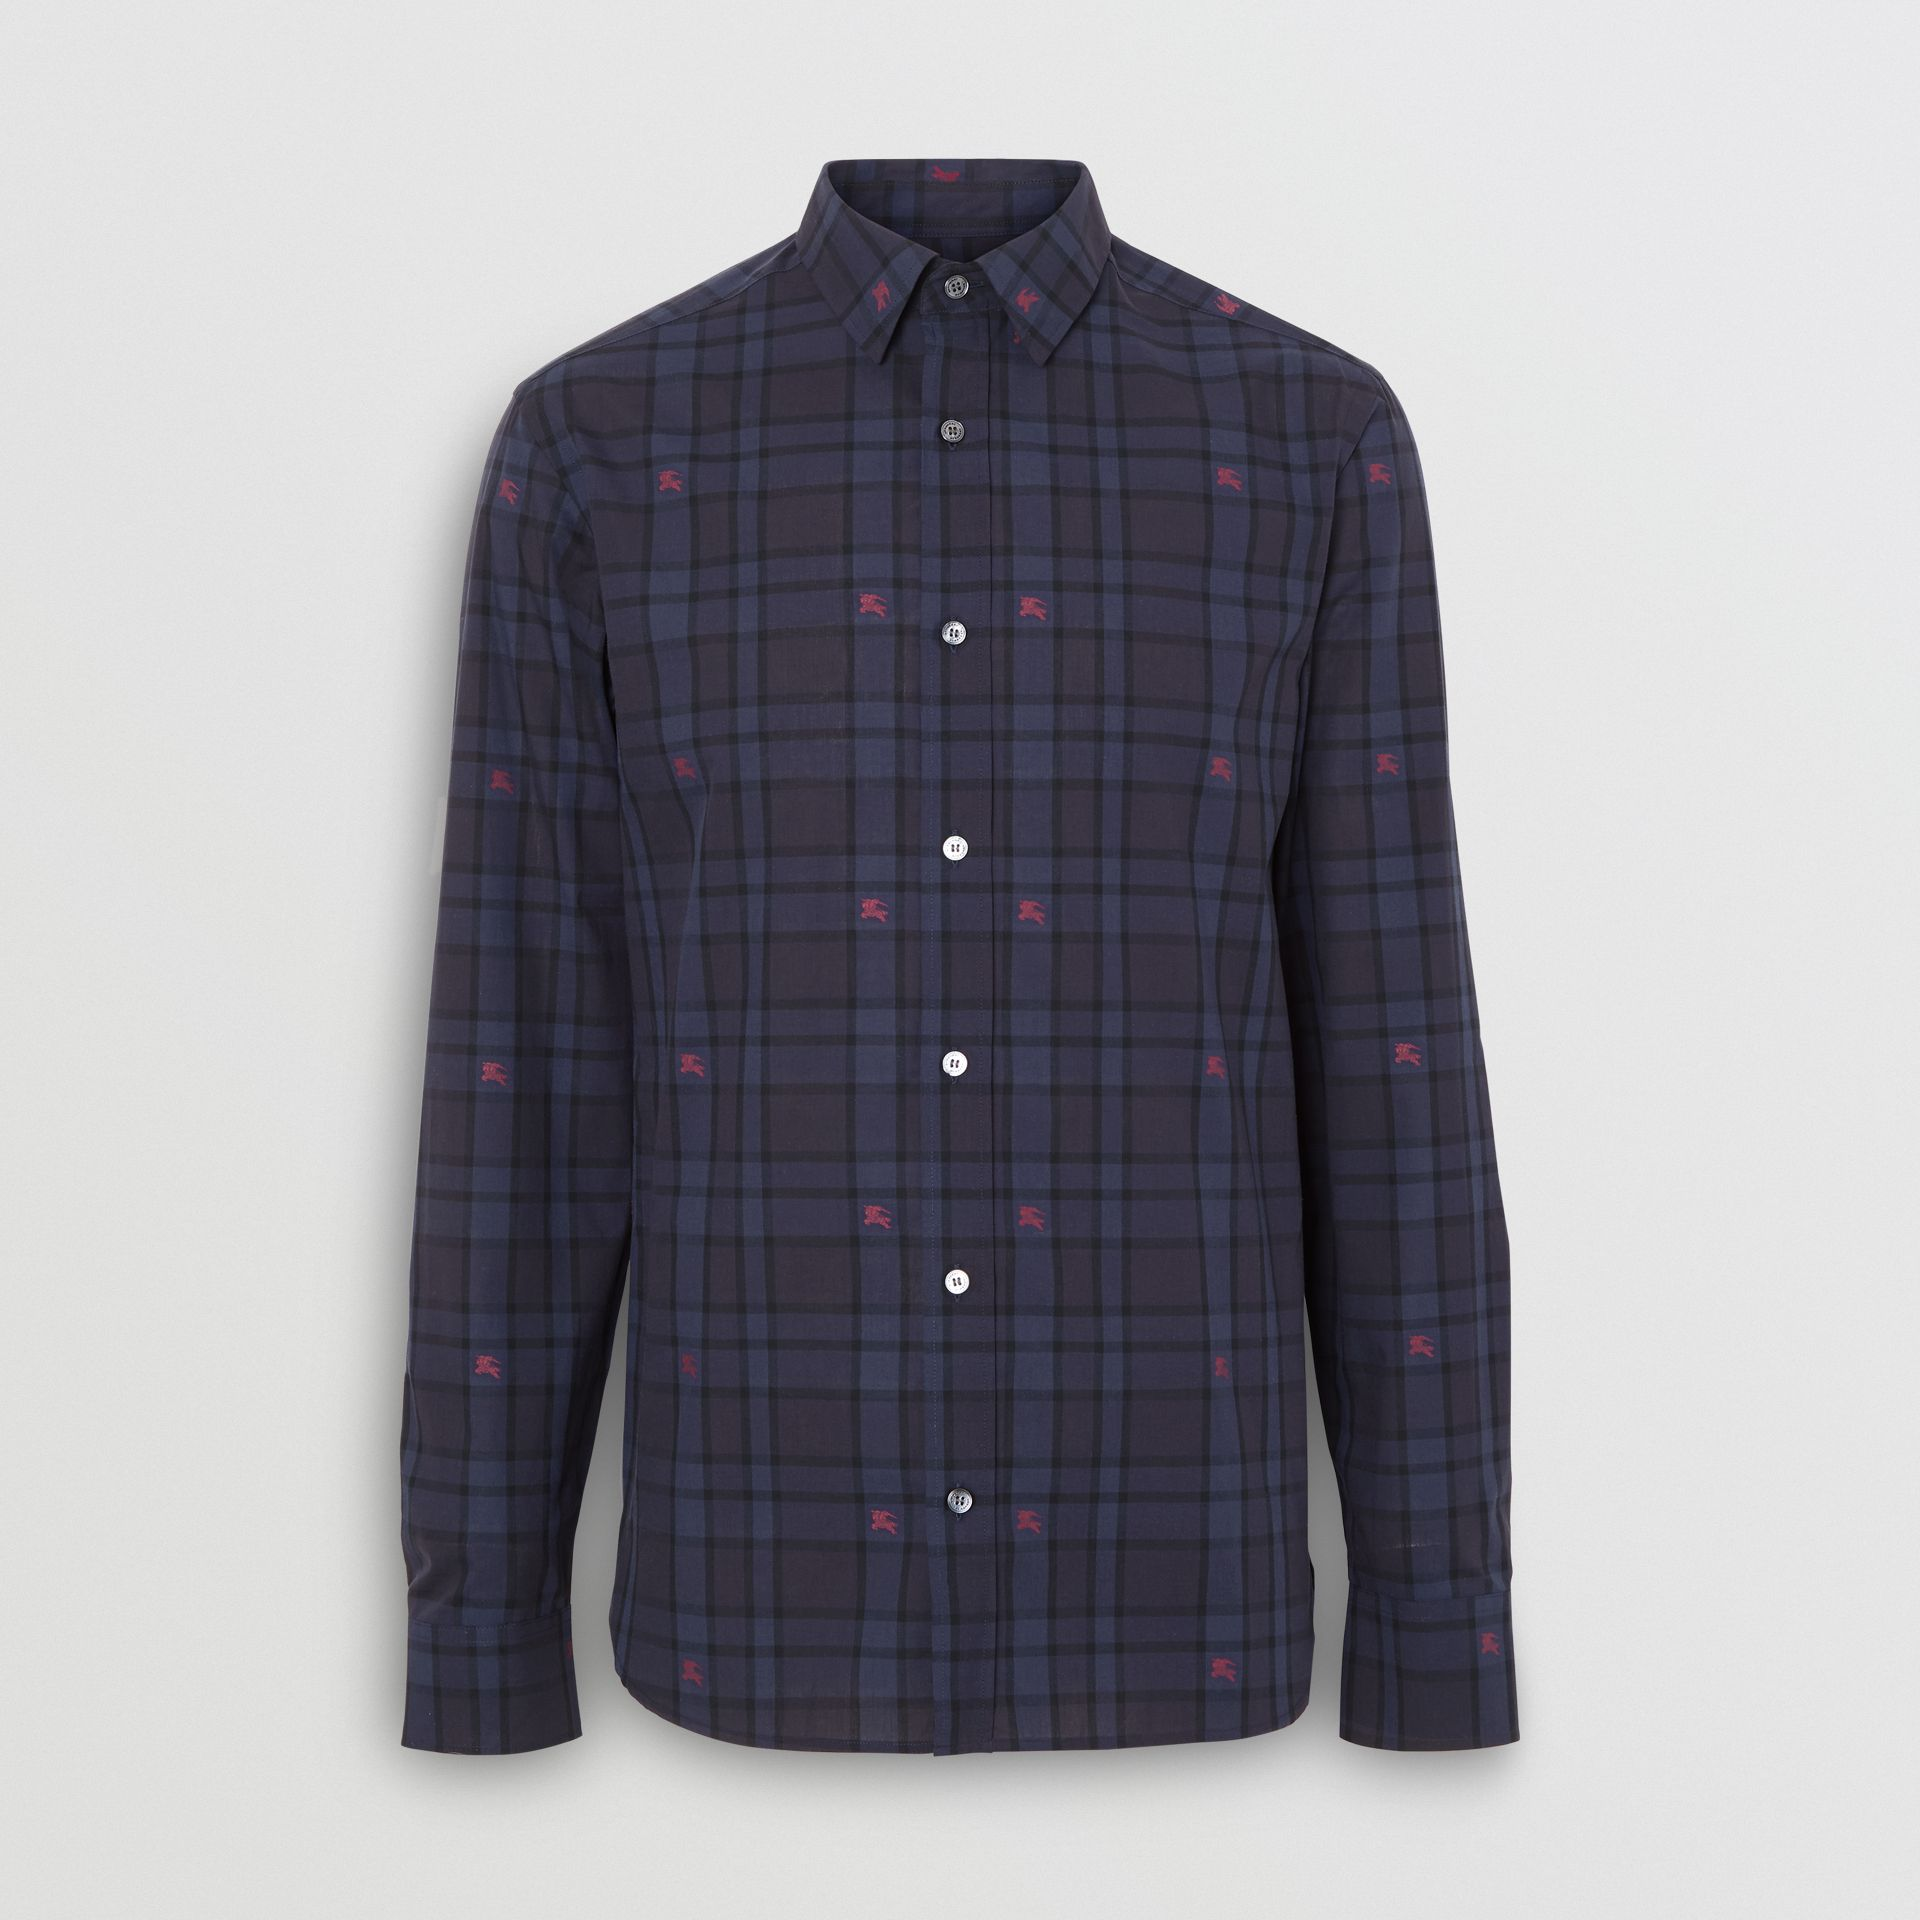 Equestrian Knight Check Cotton Shirt in Dark Indigo - Men | Burberry Australia - gallery image 3